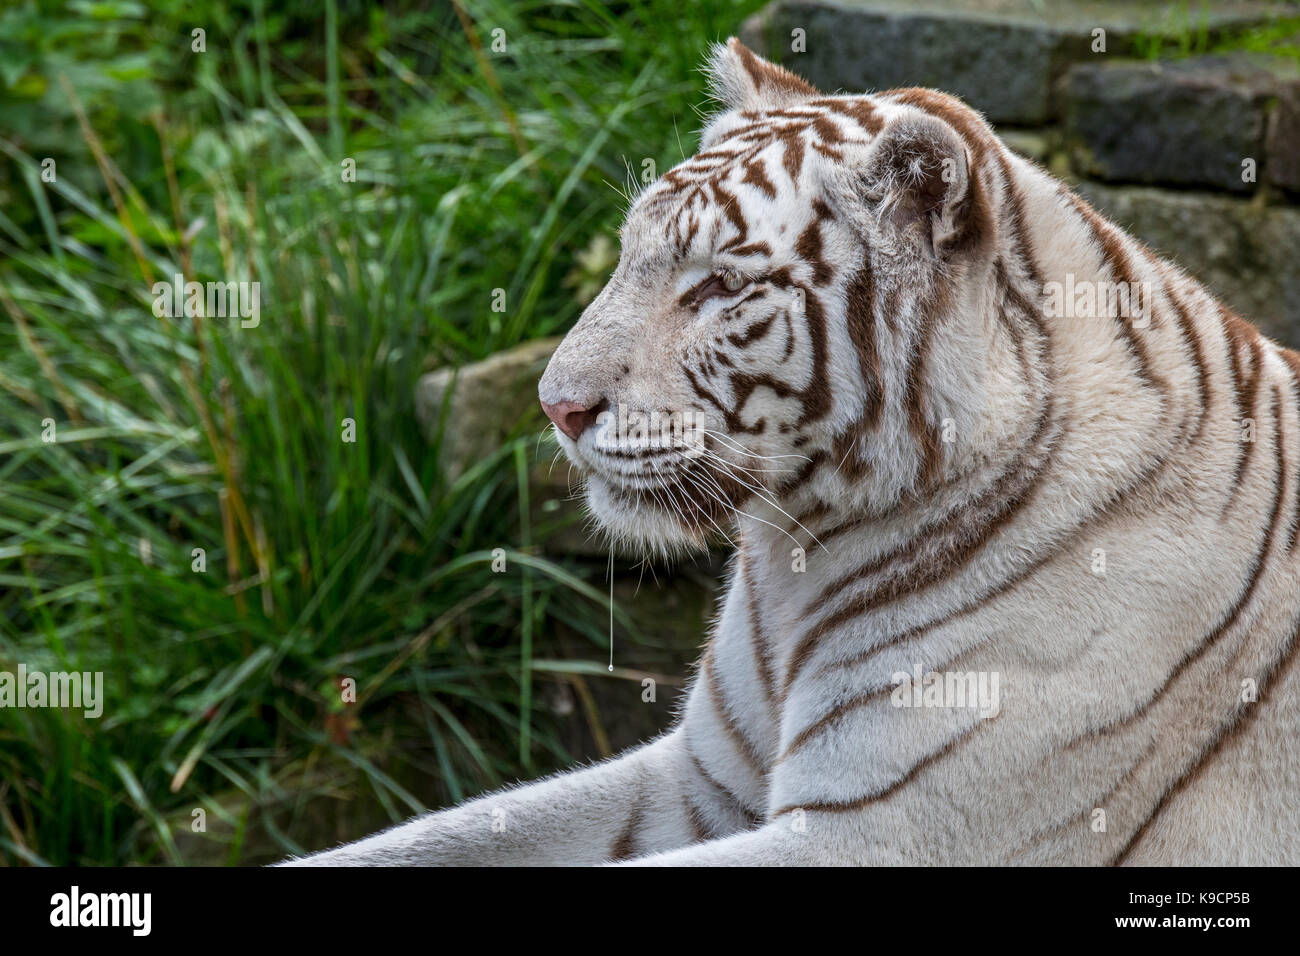 White tiger / bleached tiger (Panthera tigris) pigmentation variant of the Bengal tiger, native to India - Stock Image